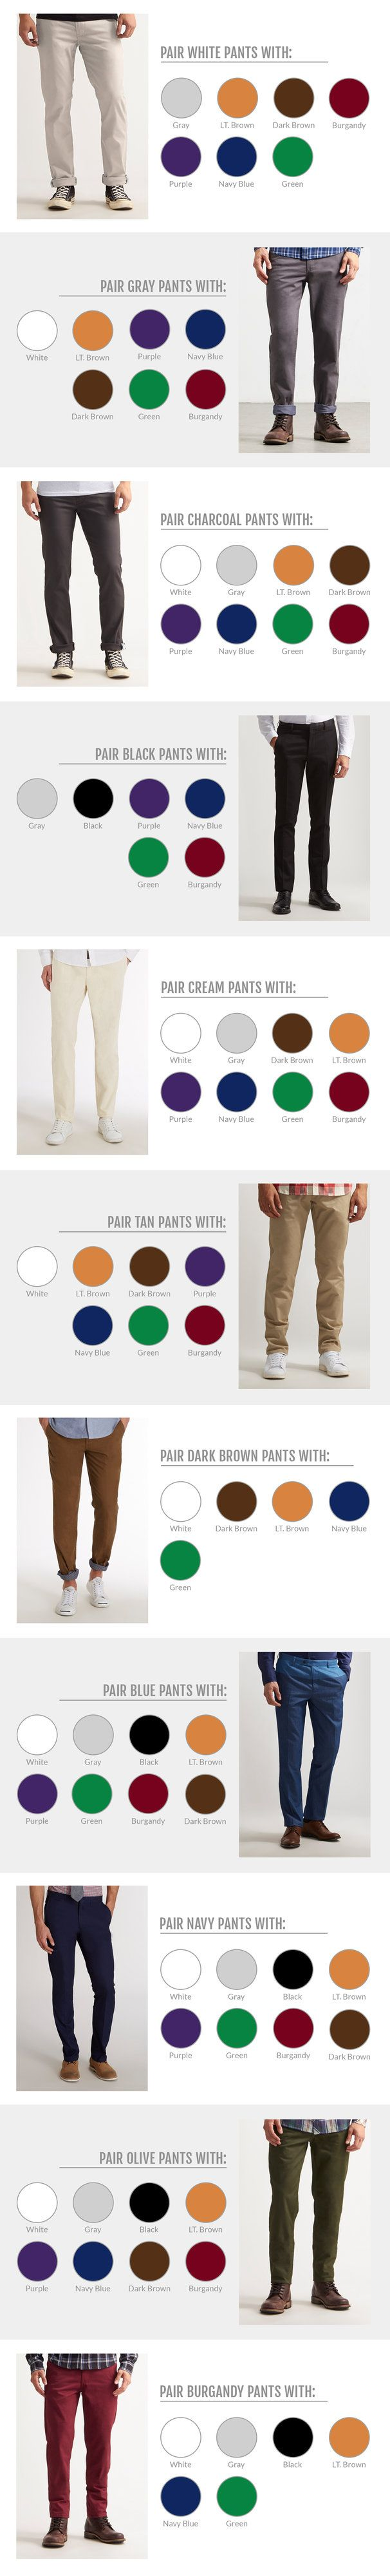 The JackThreads infographic: What color shoes should you ...